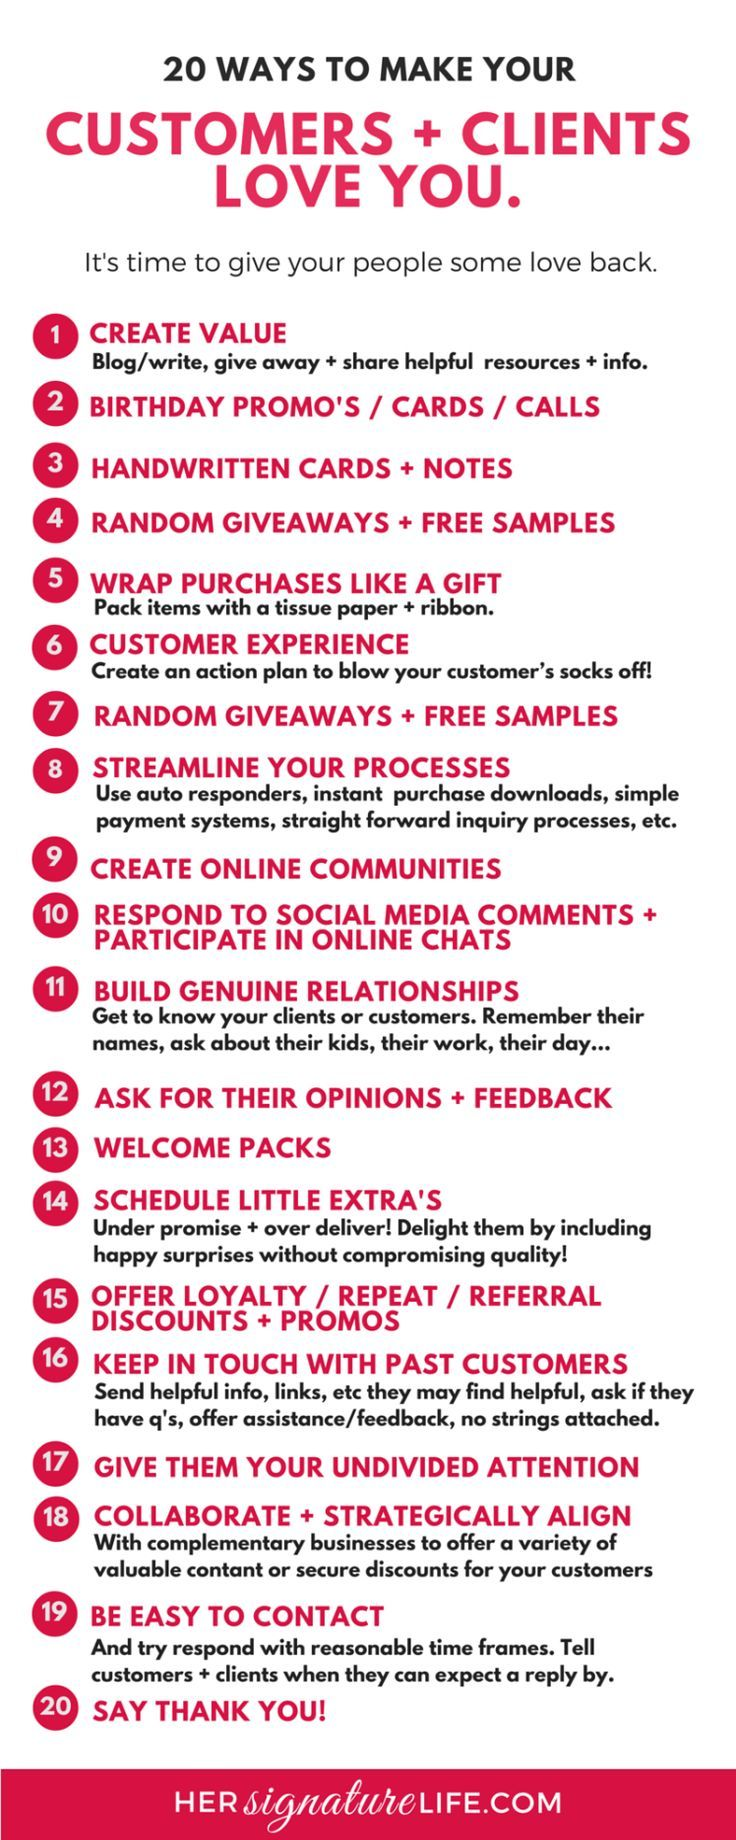 Simple, cost and time effective ideas to help thank, delight, and blow the socks off your clients and customers. Here are some suggestions that incorporate customer service, client gifts and extras, business systems and processes and people skills to create raving fans and loyal customers + clients. http://hersignaturelife.com